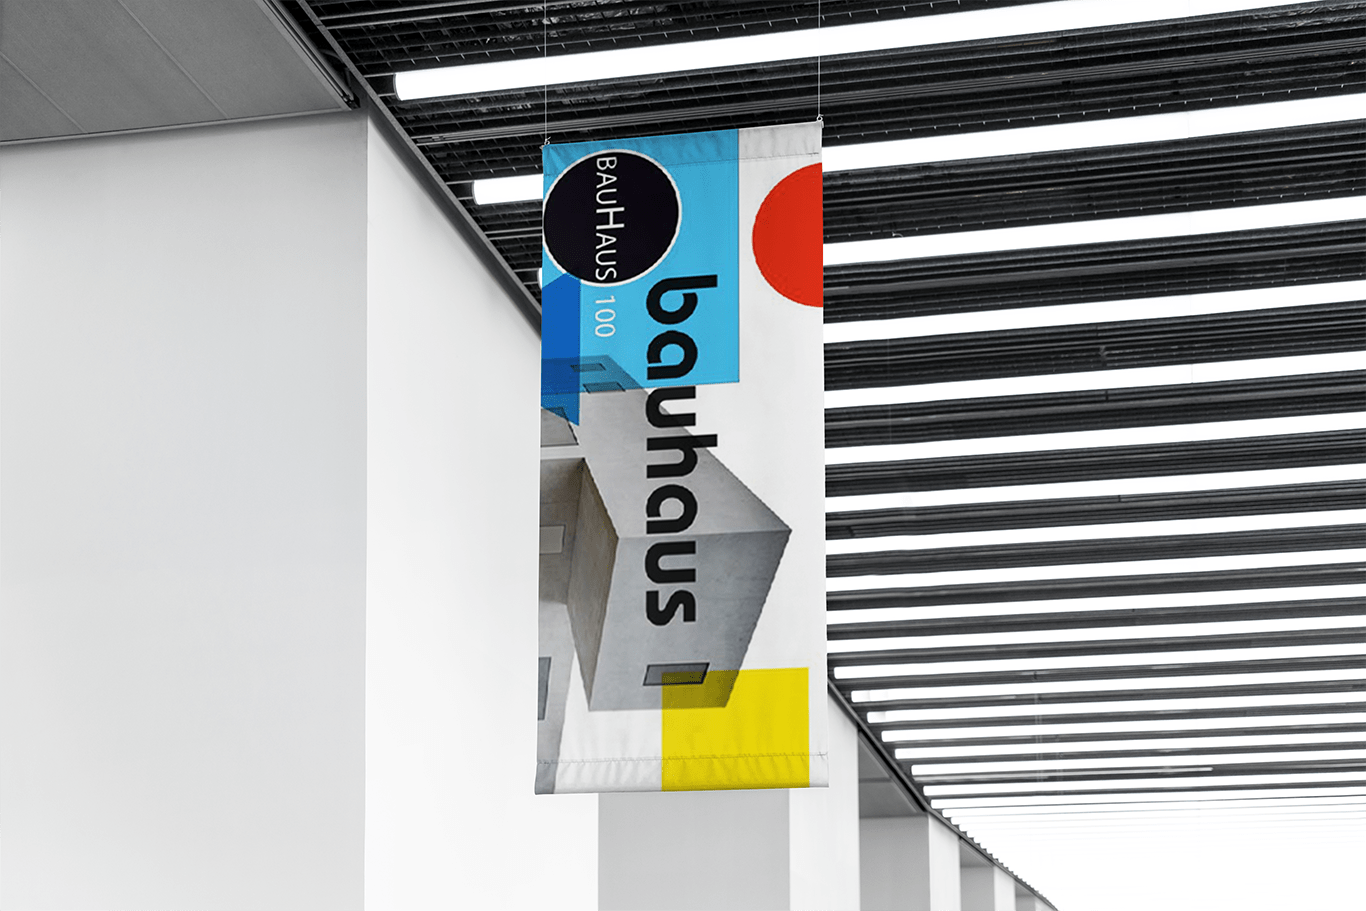 A pennant hanging from the ceiling displaying the Bauhaus design.